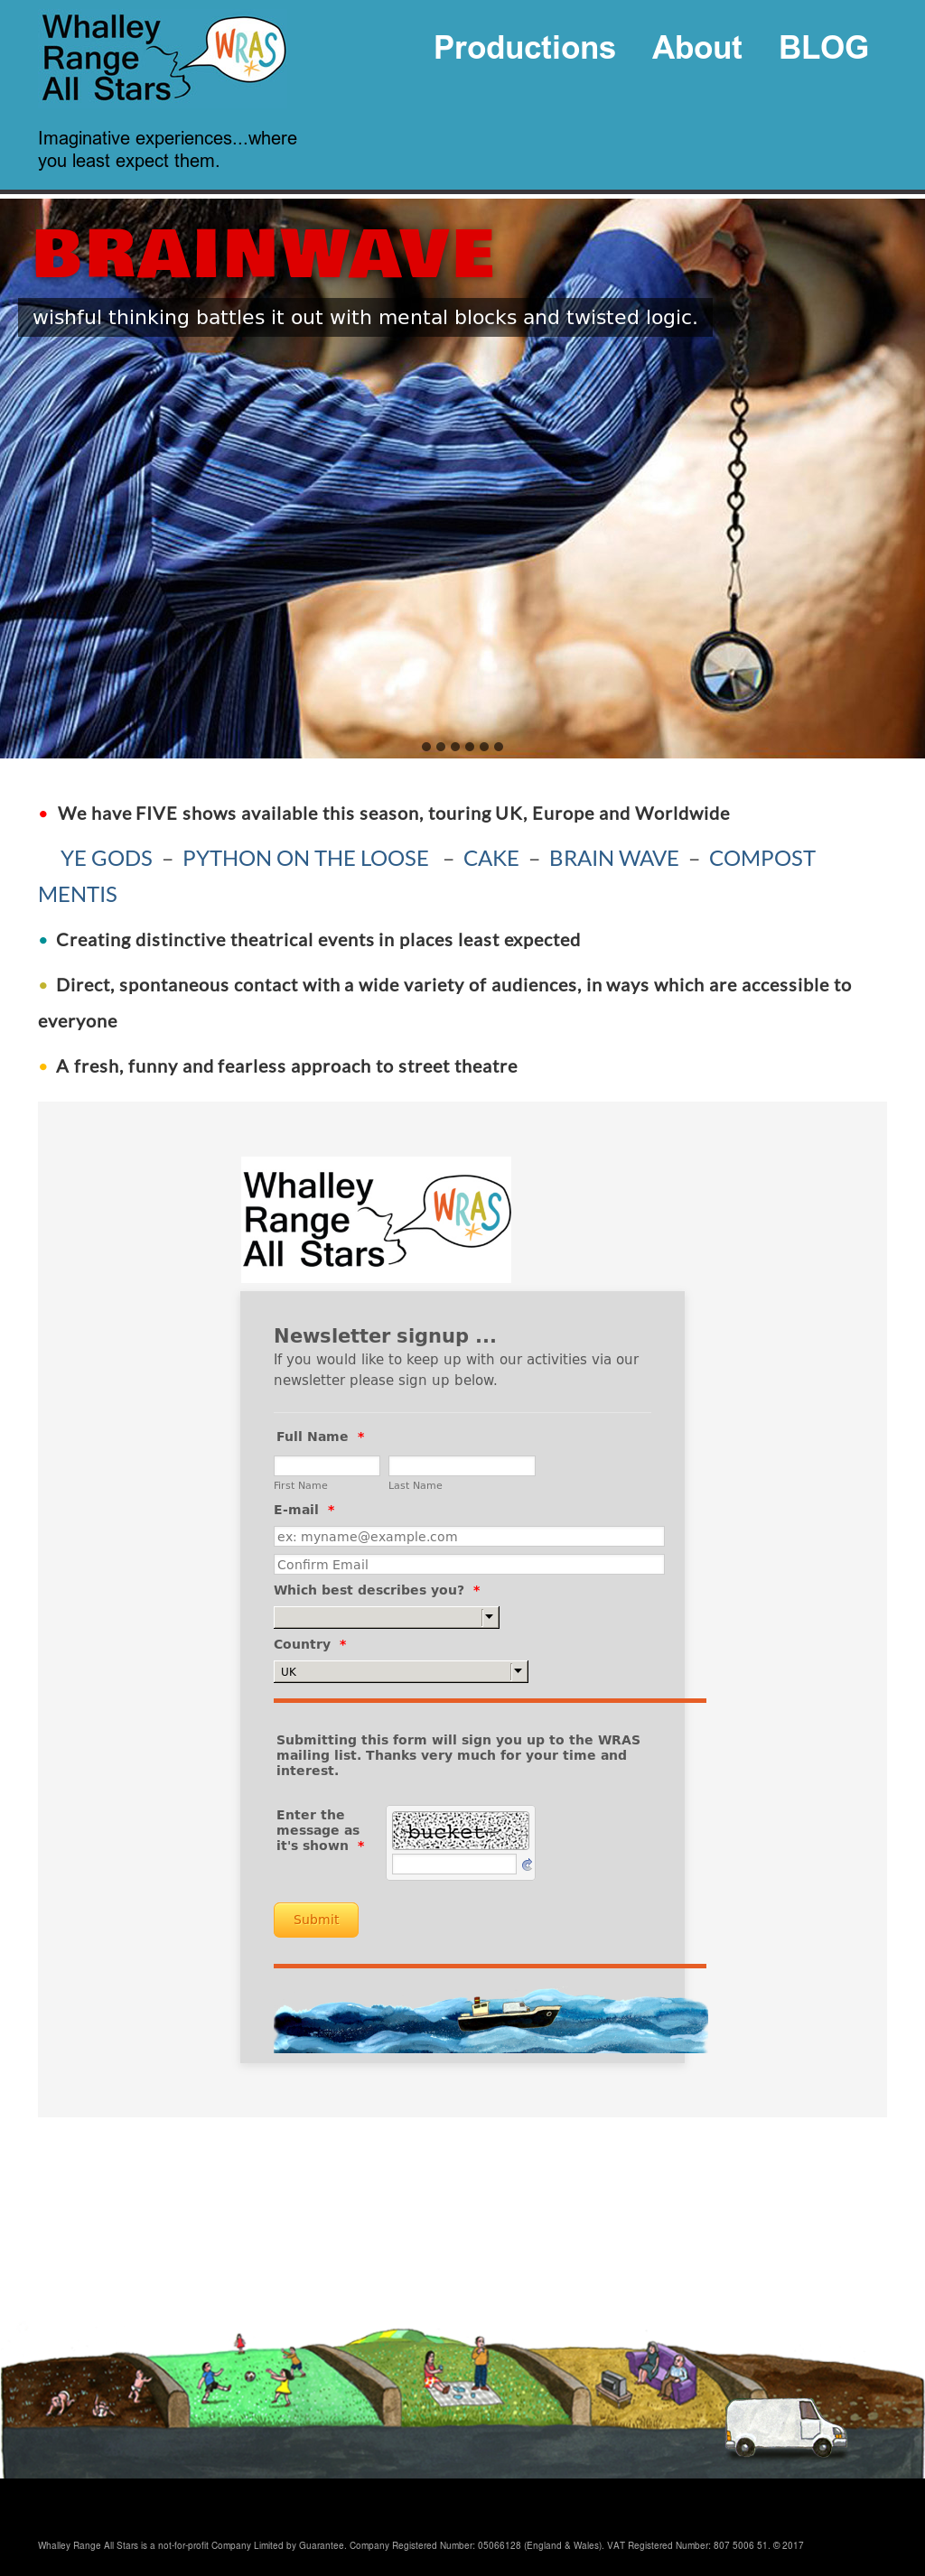 Whalley Range All Stars (Wras) Competitors, Revenue and